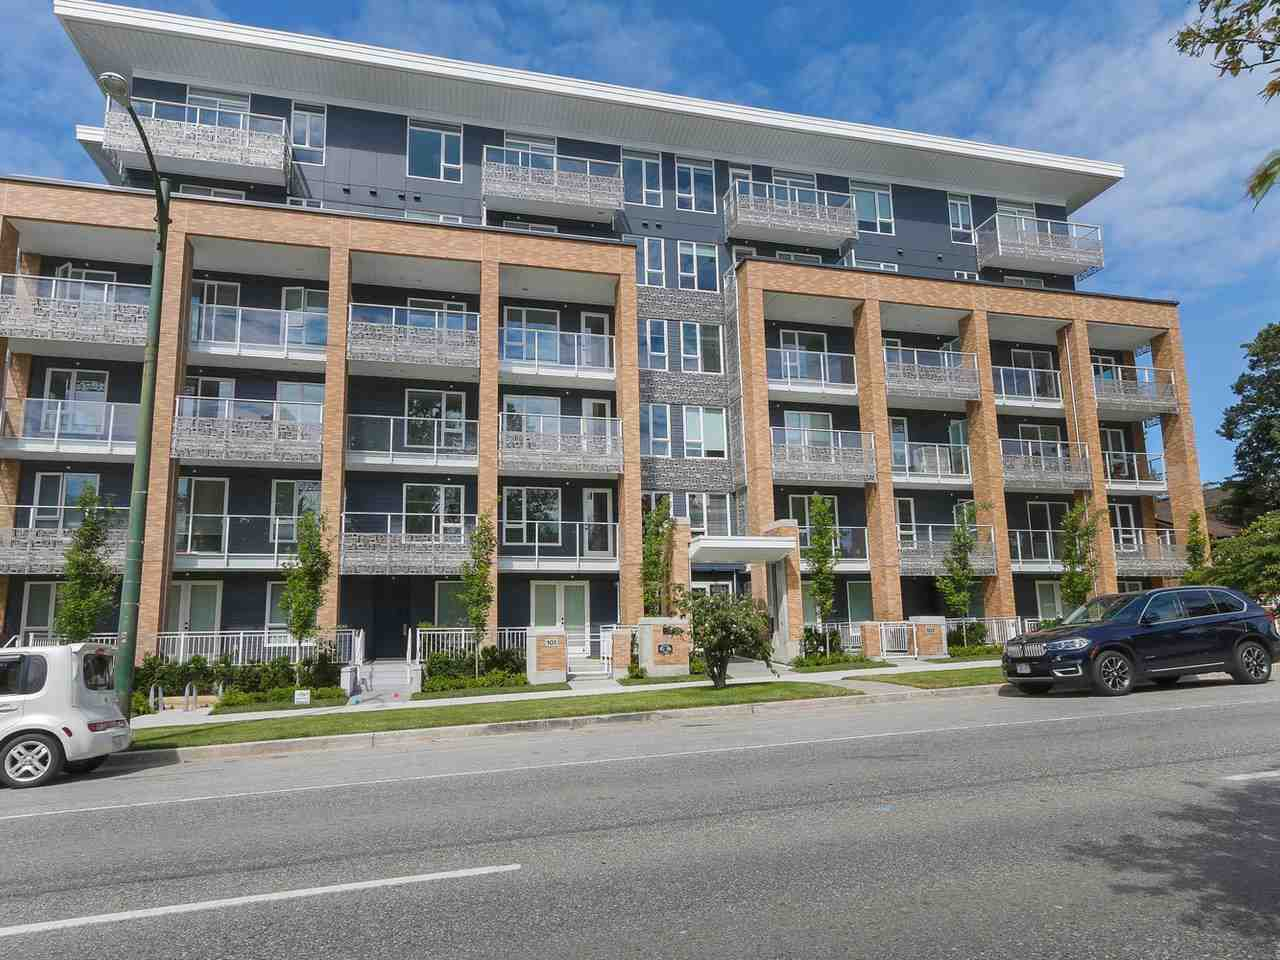 """Main Photo: 307 6933 CAMBIE Street in Vancouver: Cambie Condo for sale in """"MOSAIC CAMBRIA PARK"""" (Vancouver West)  : MLS®# R2379345"""